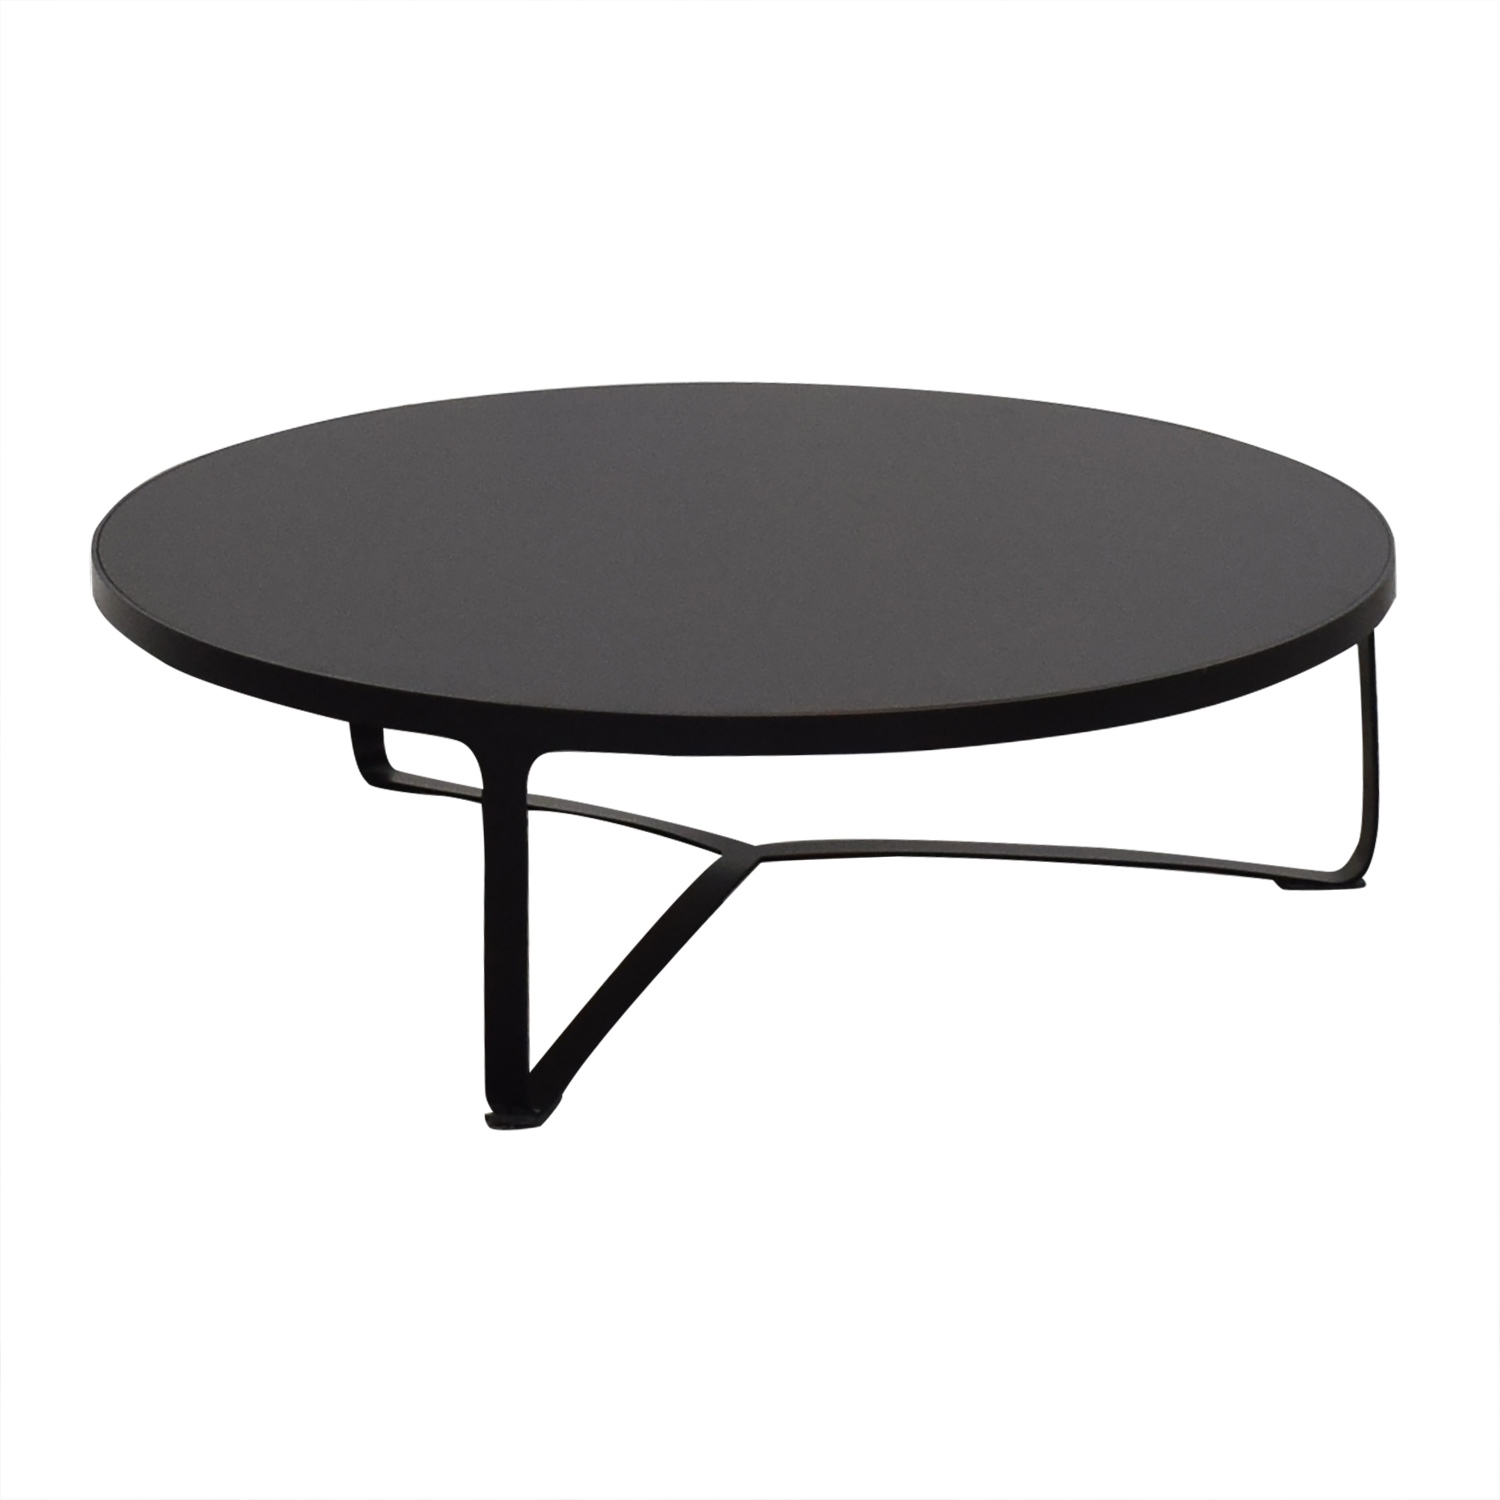 Design Within Reach Design Within Reach Cage Coffee Table by Tacchini used